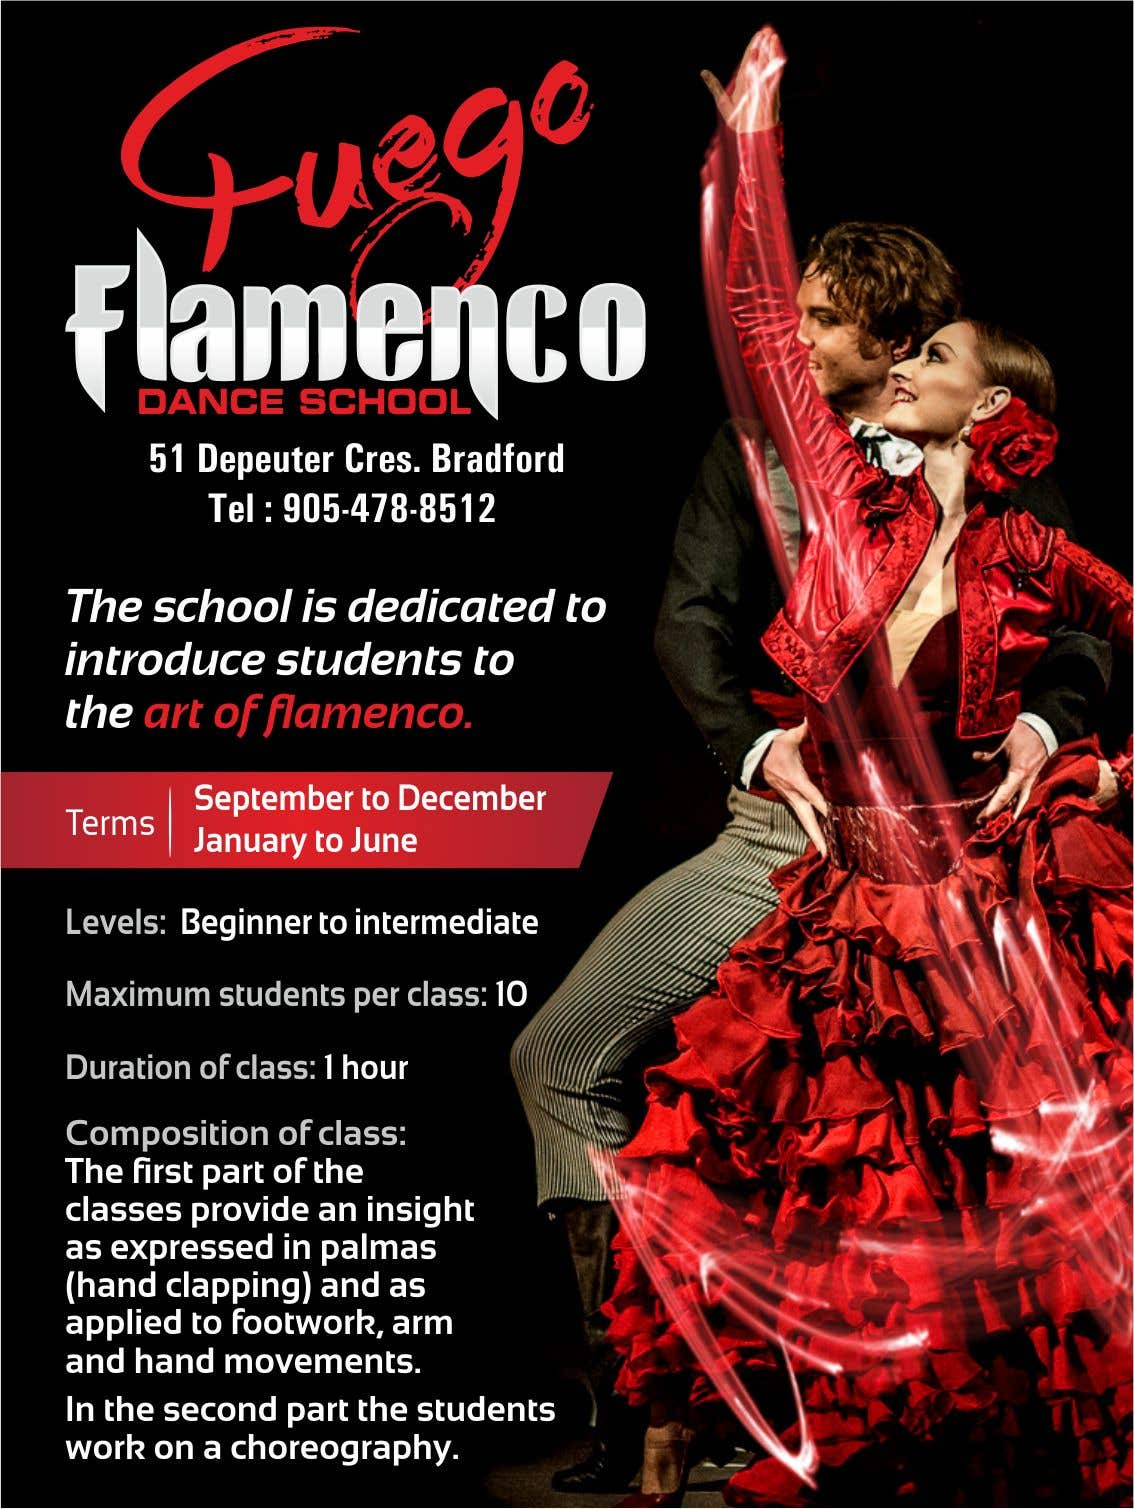 Feago Flamenco Dance School